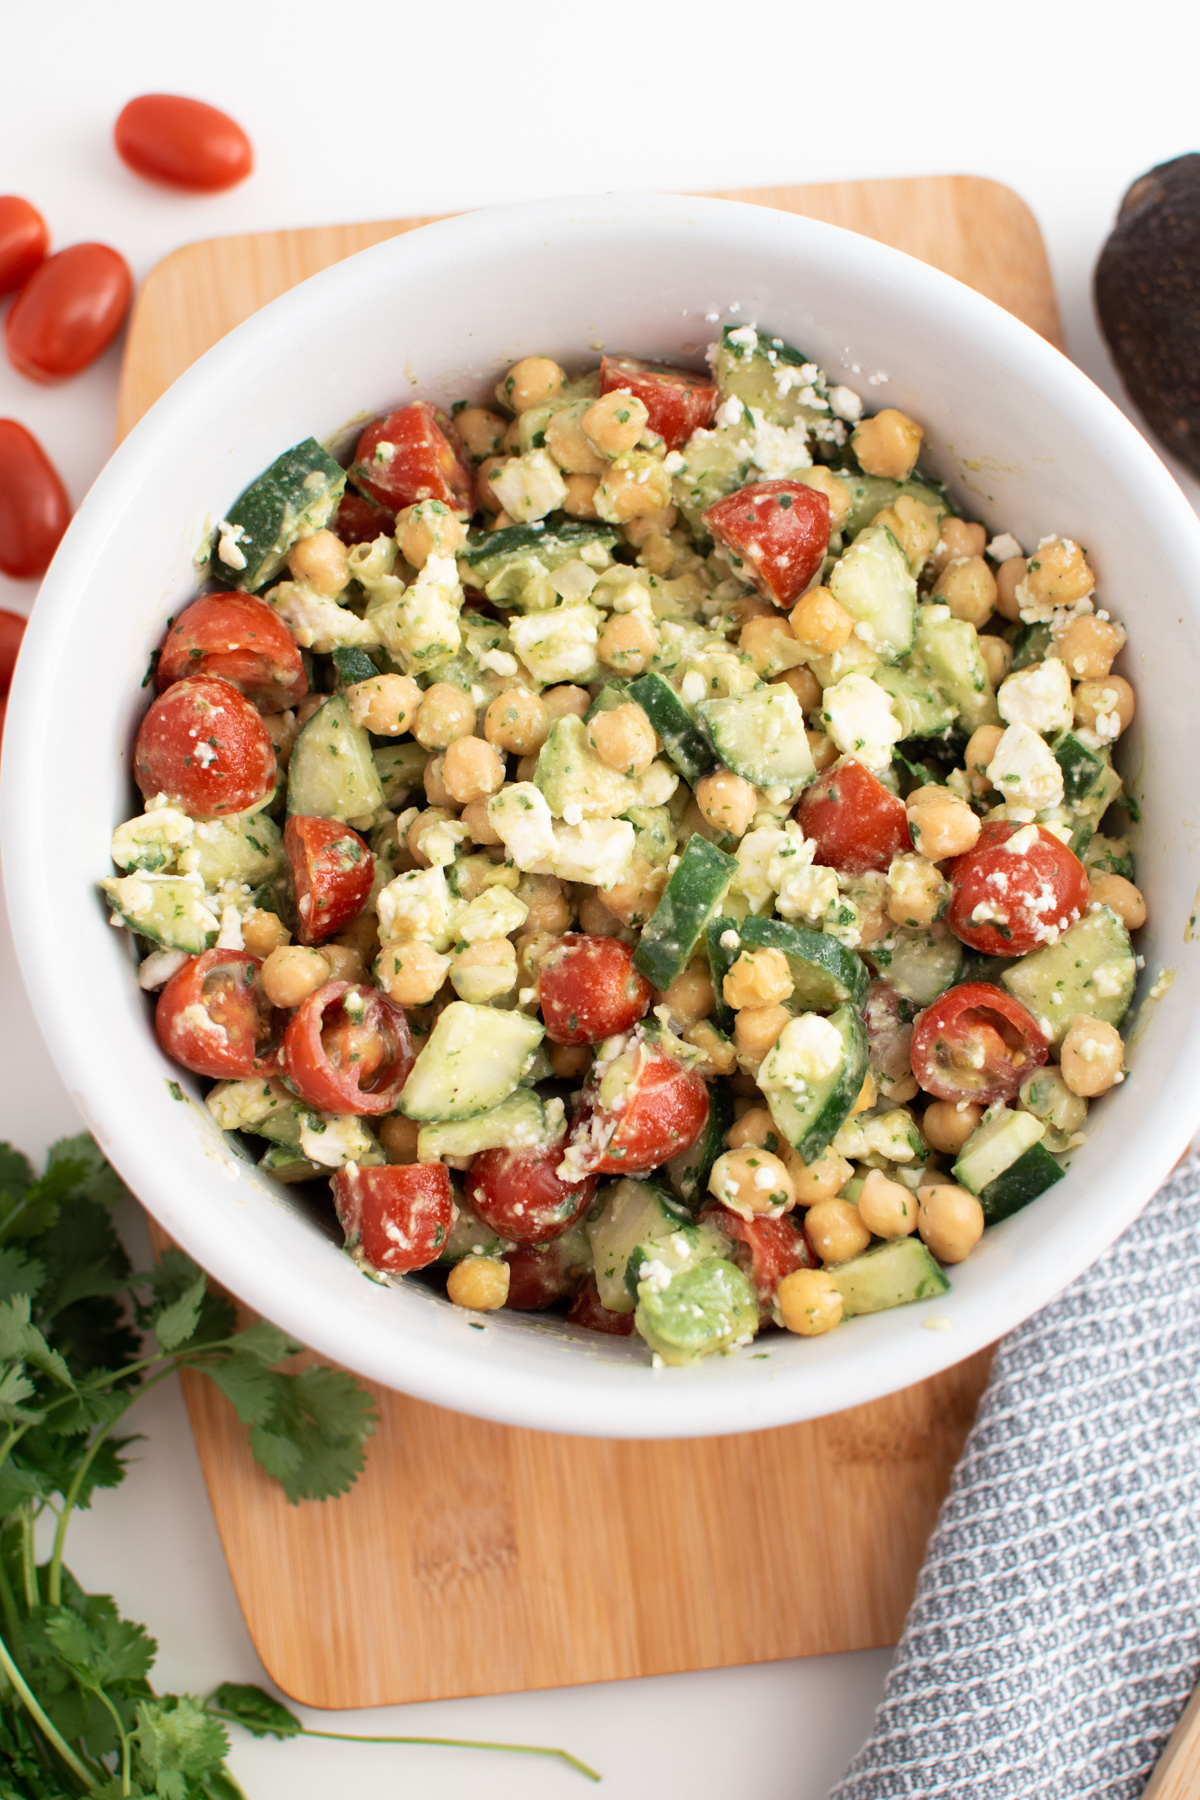 Chickpea salad with feta in white serving bowl on wooden cutting board.